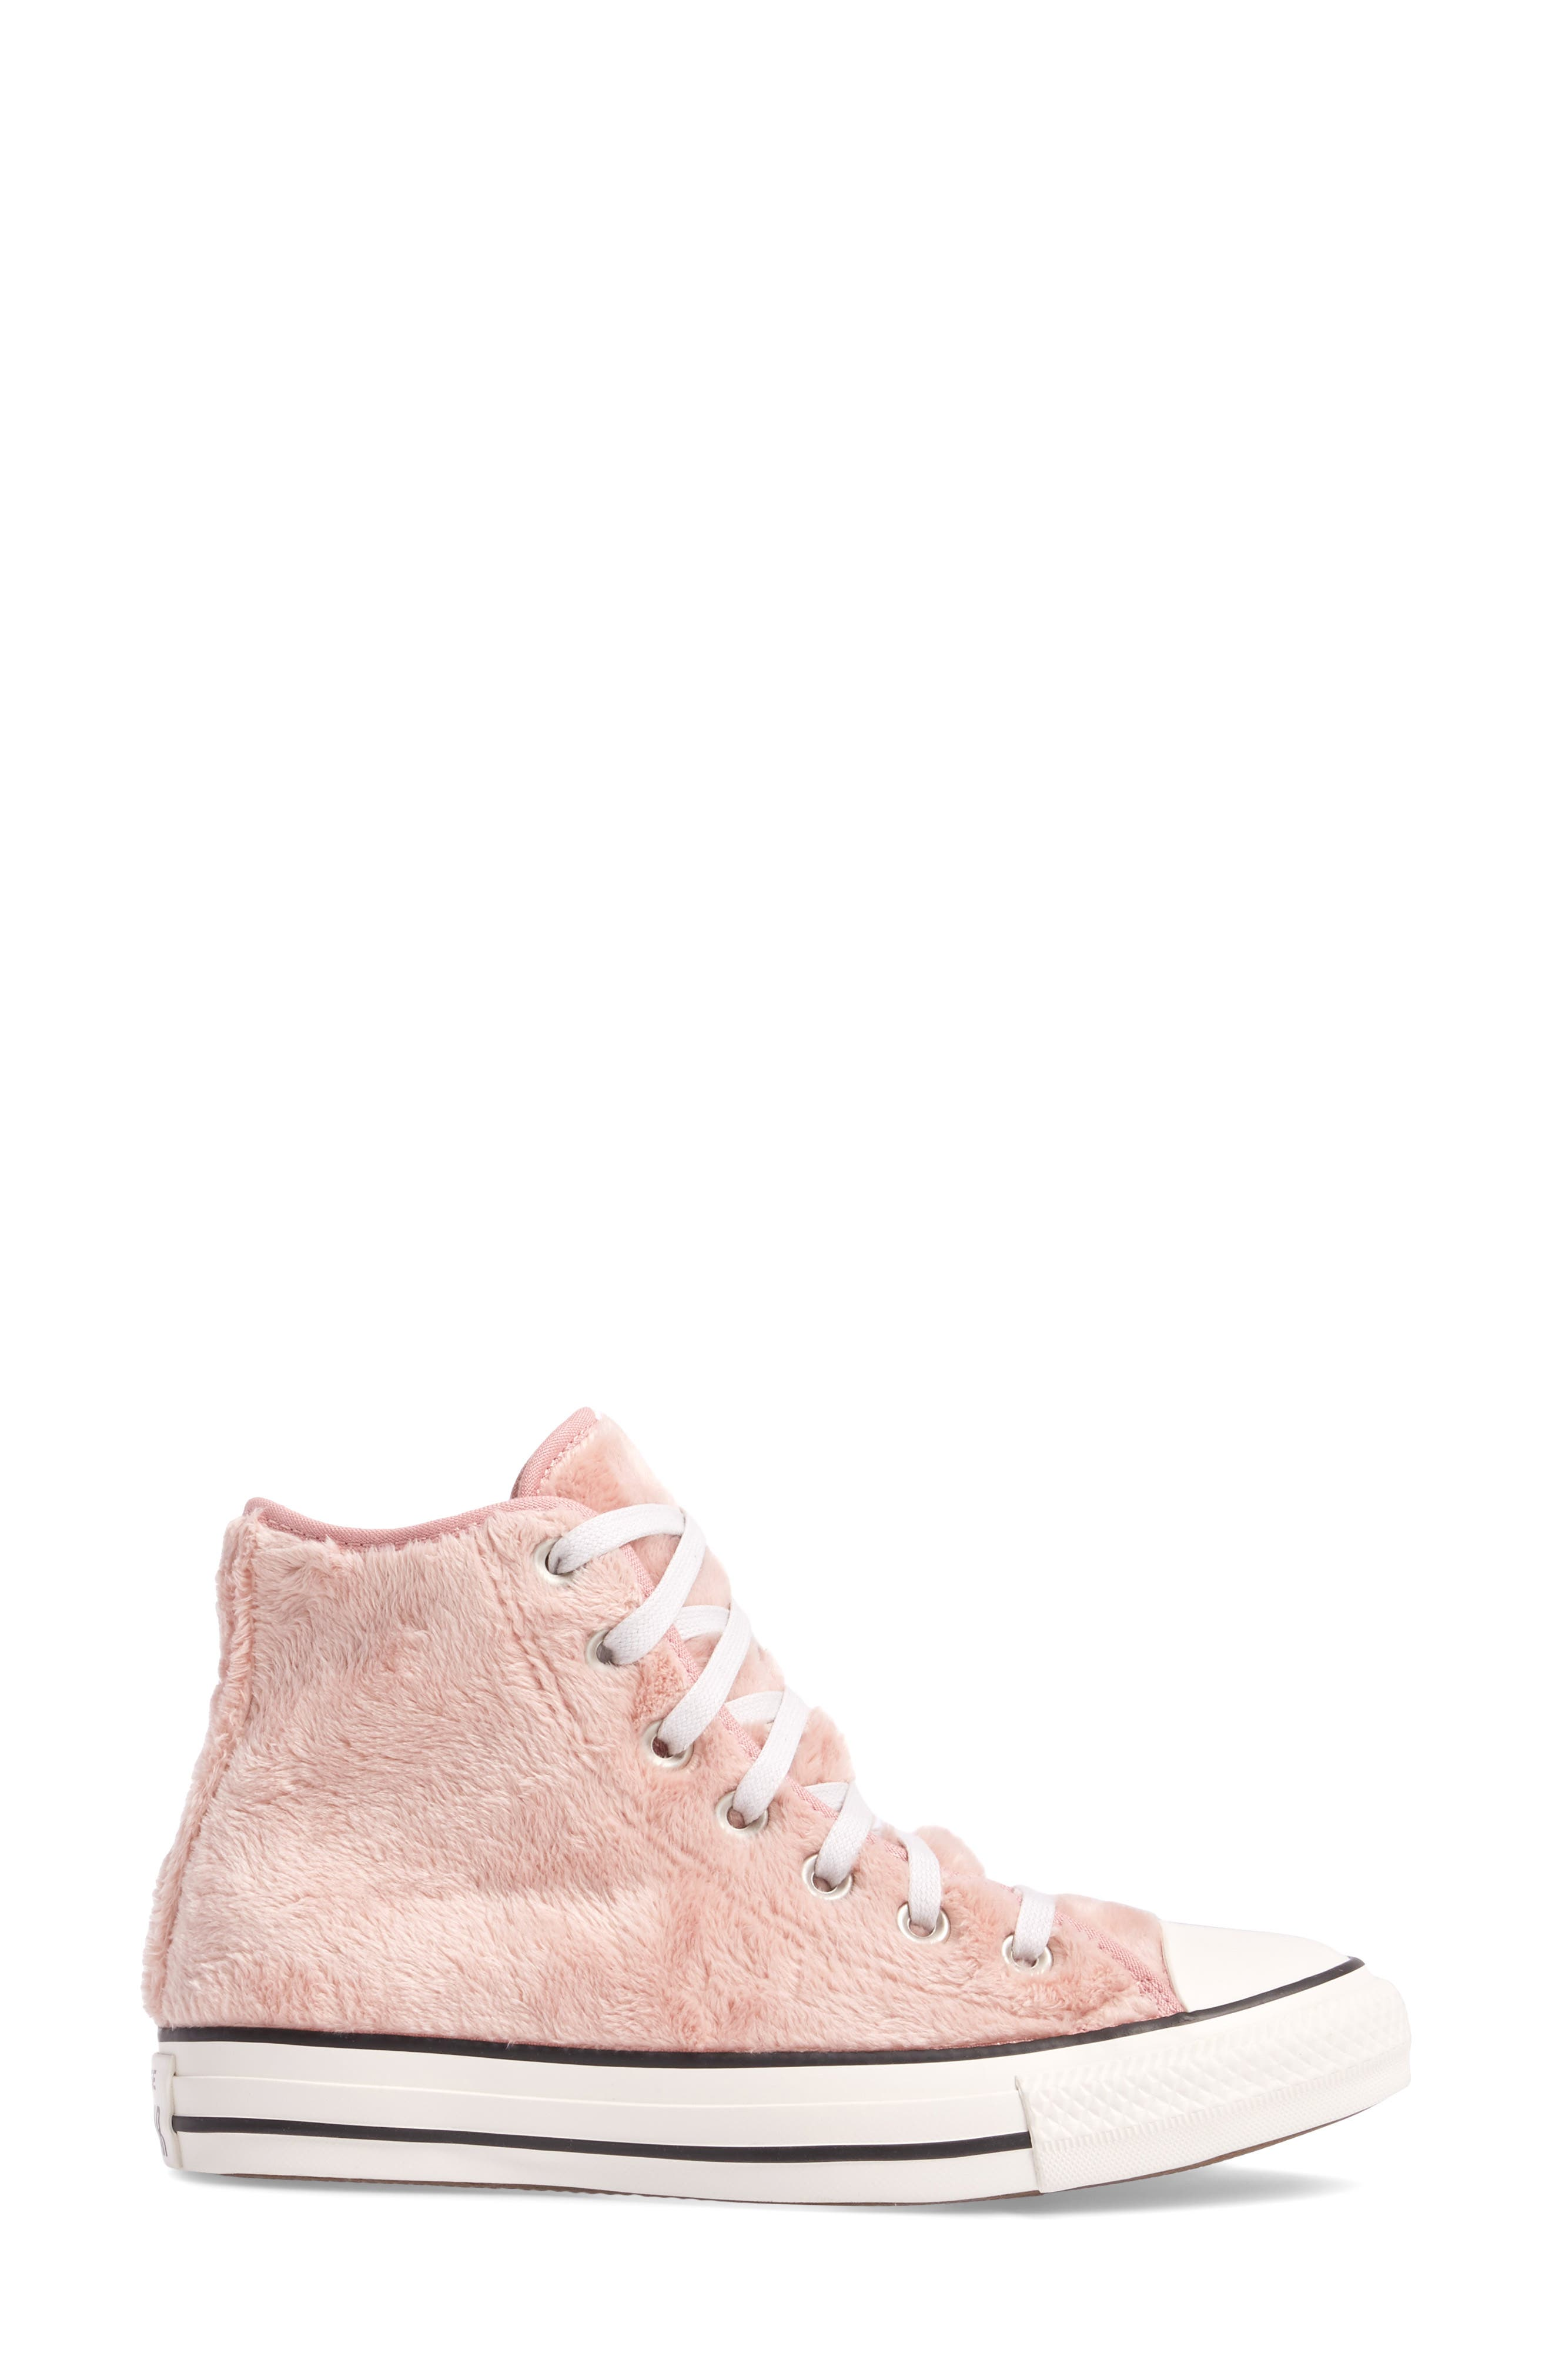 Alternate Image 3  - Converse Chuck Taylor® All Star® Faux Fur High Top Sneakers (Women)